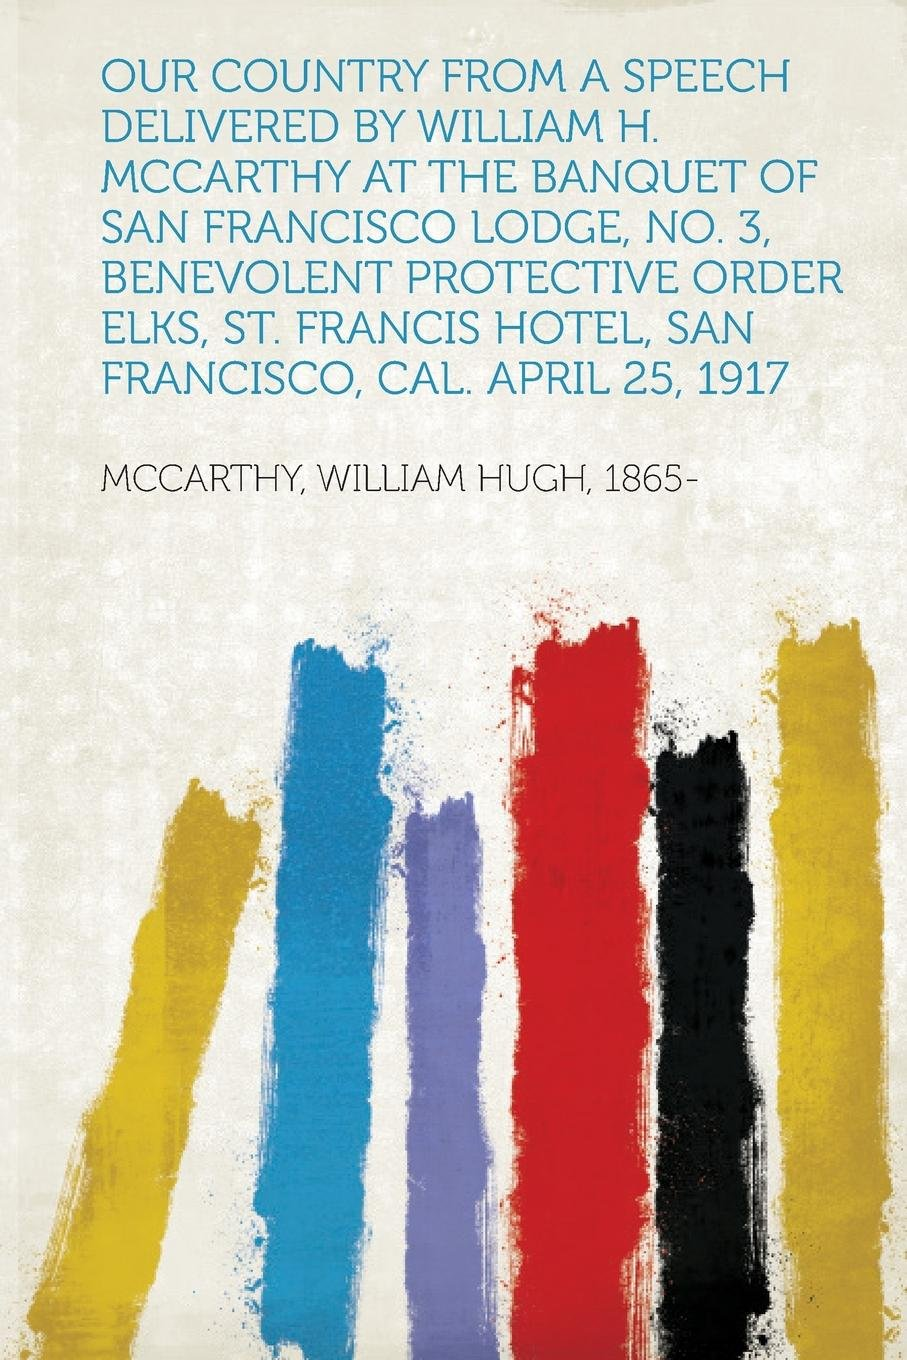 Read Online Our Country from a Speech Delivered by William H. Mccarthy at the Banquet of San Francisco Lodge, No. 3, Benevolent Protective Order Elks, St. Francis Hotel, San Francisco, Cal. April 25, 1917 PDF